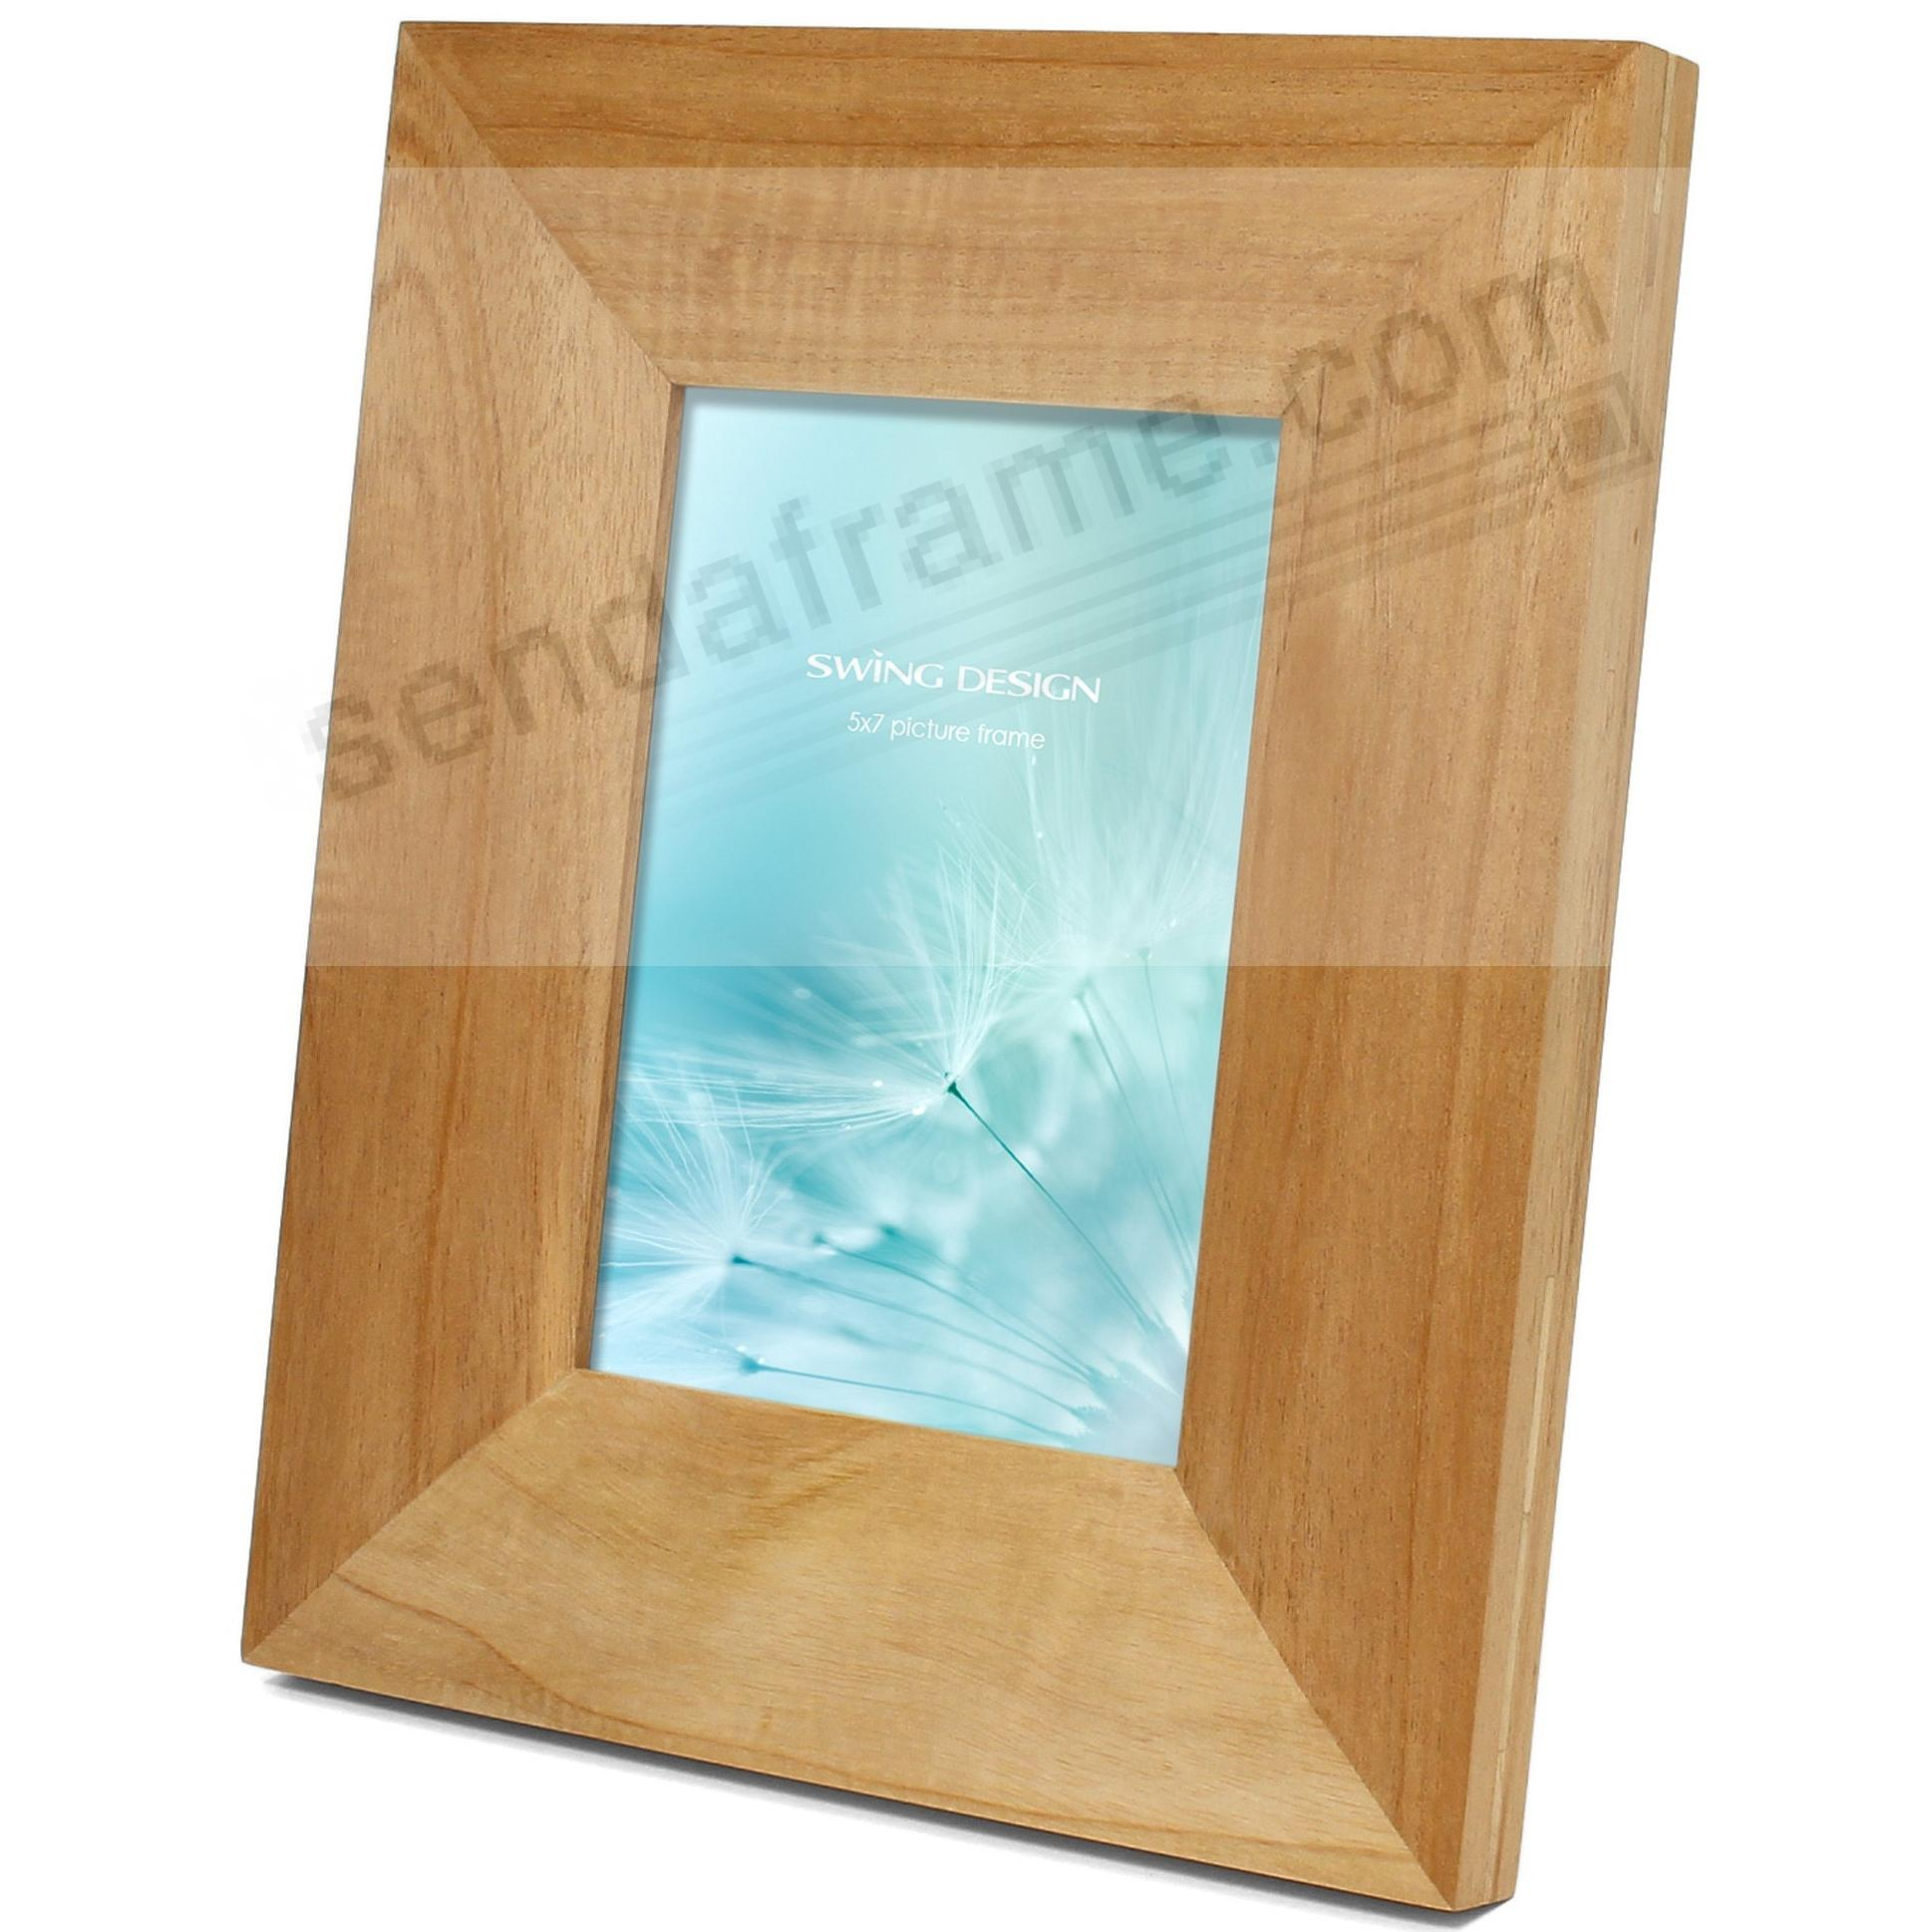 The ARTISAN Natural Solid MARAGOSA 5x7 frame by Swing Design®